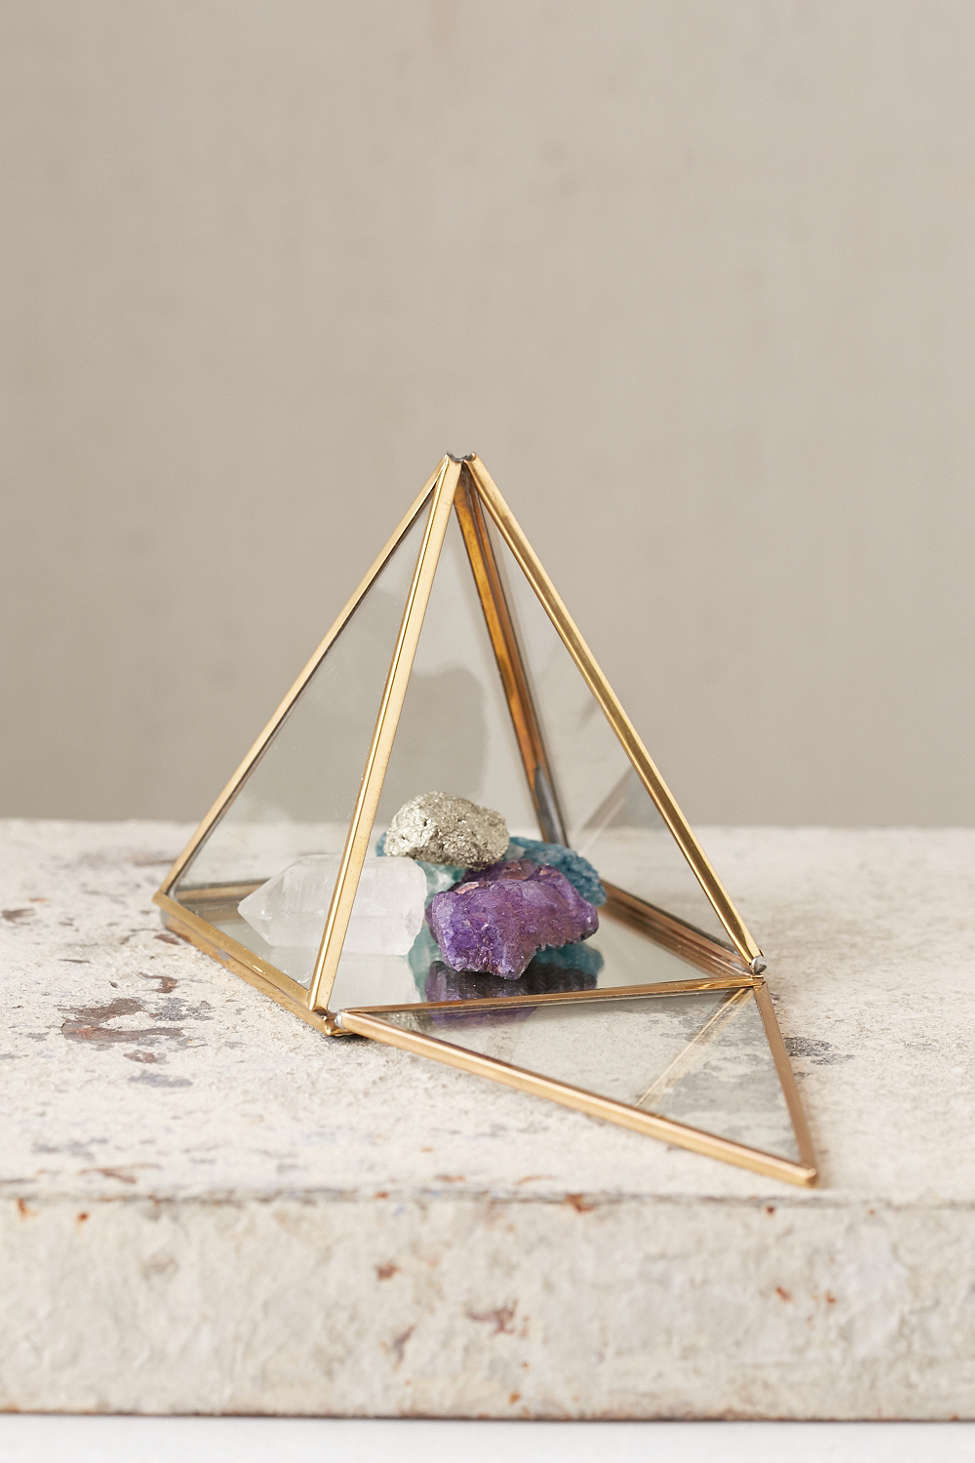 Pyramid display box from Urban Outfitters